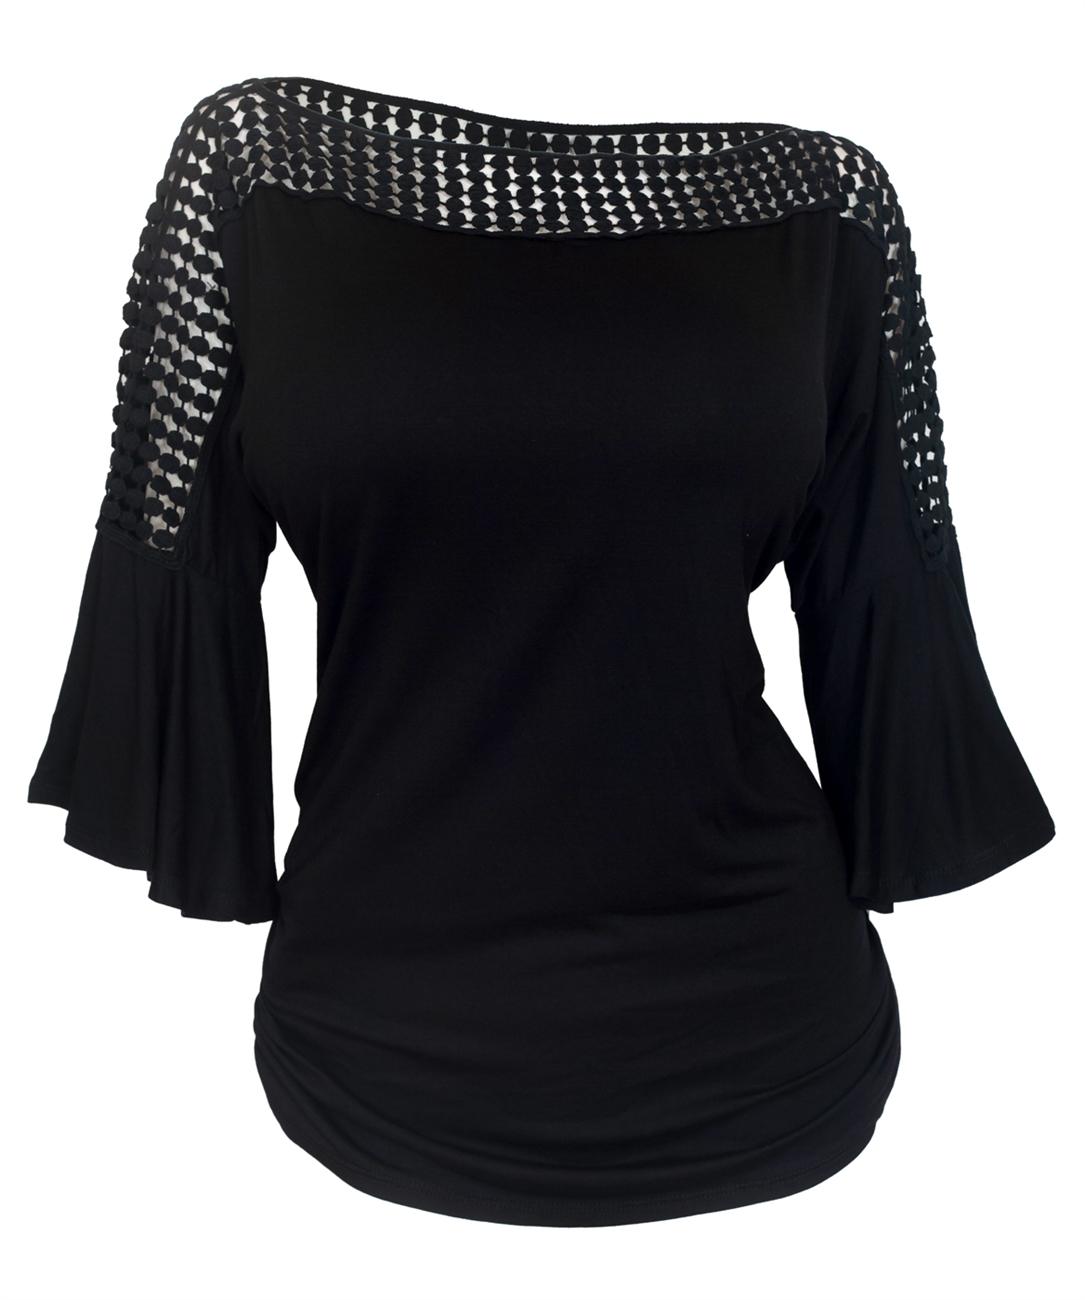 Plus Size Crochet Neck Bell Sleeve Top Black